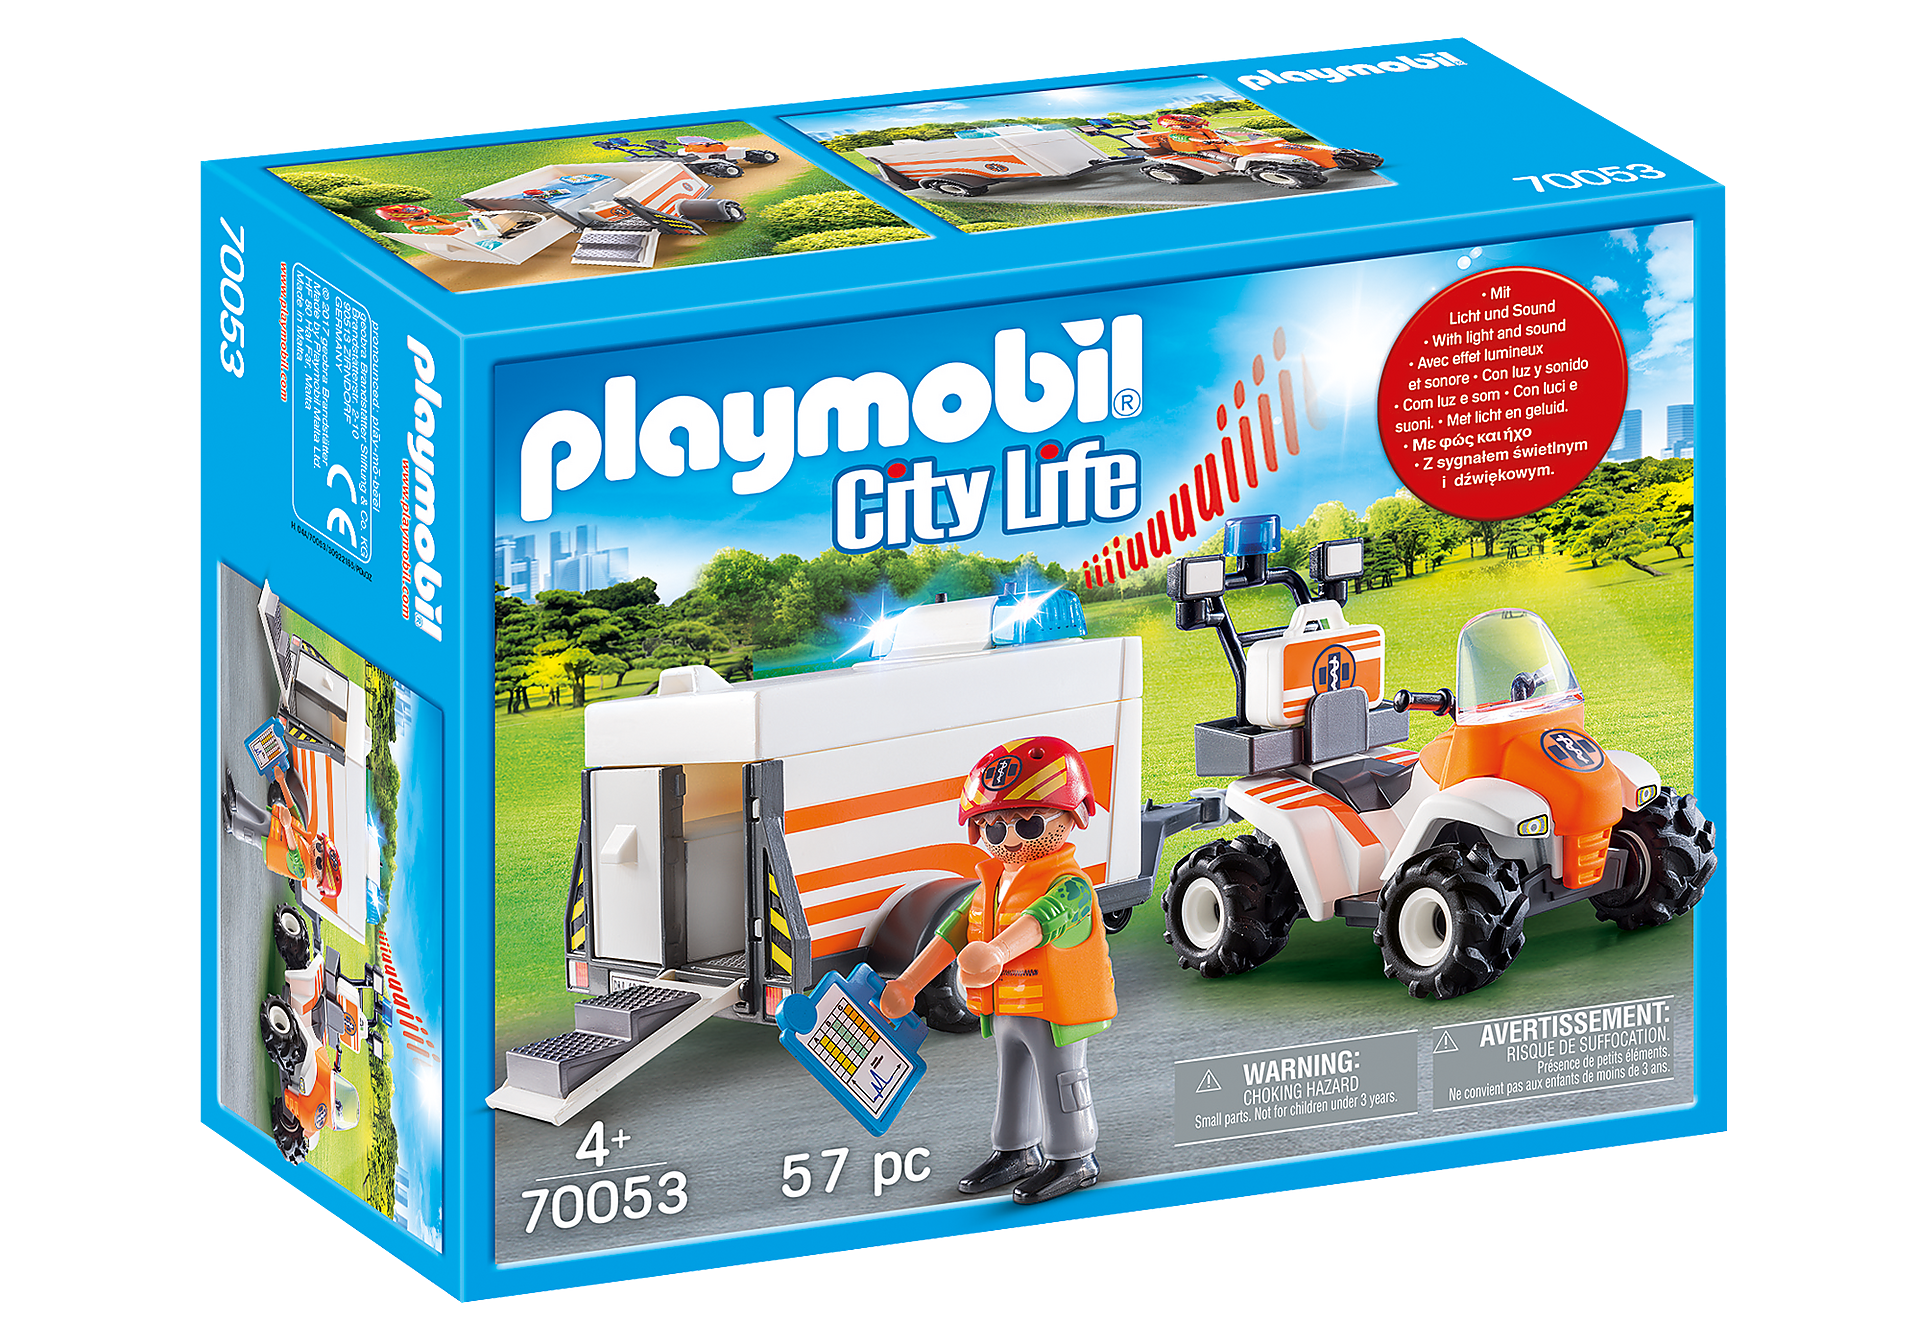 http://media.playmobil.com/i/playmobil/70053_product_box_front/Quad et remorque de secours